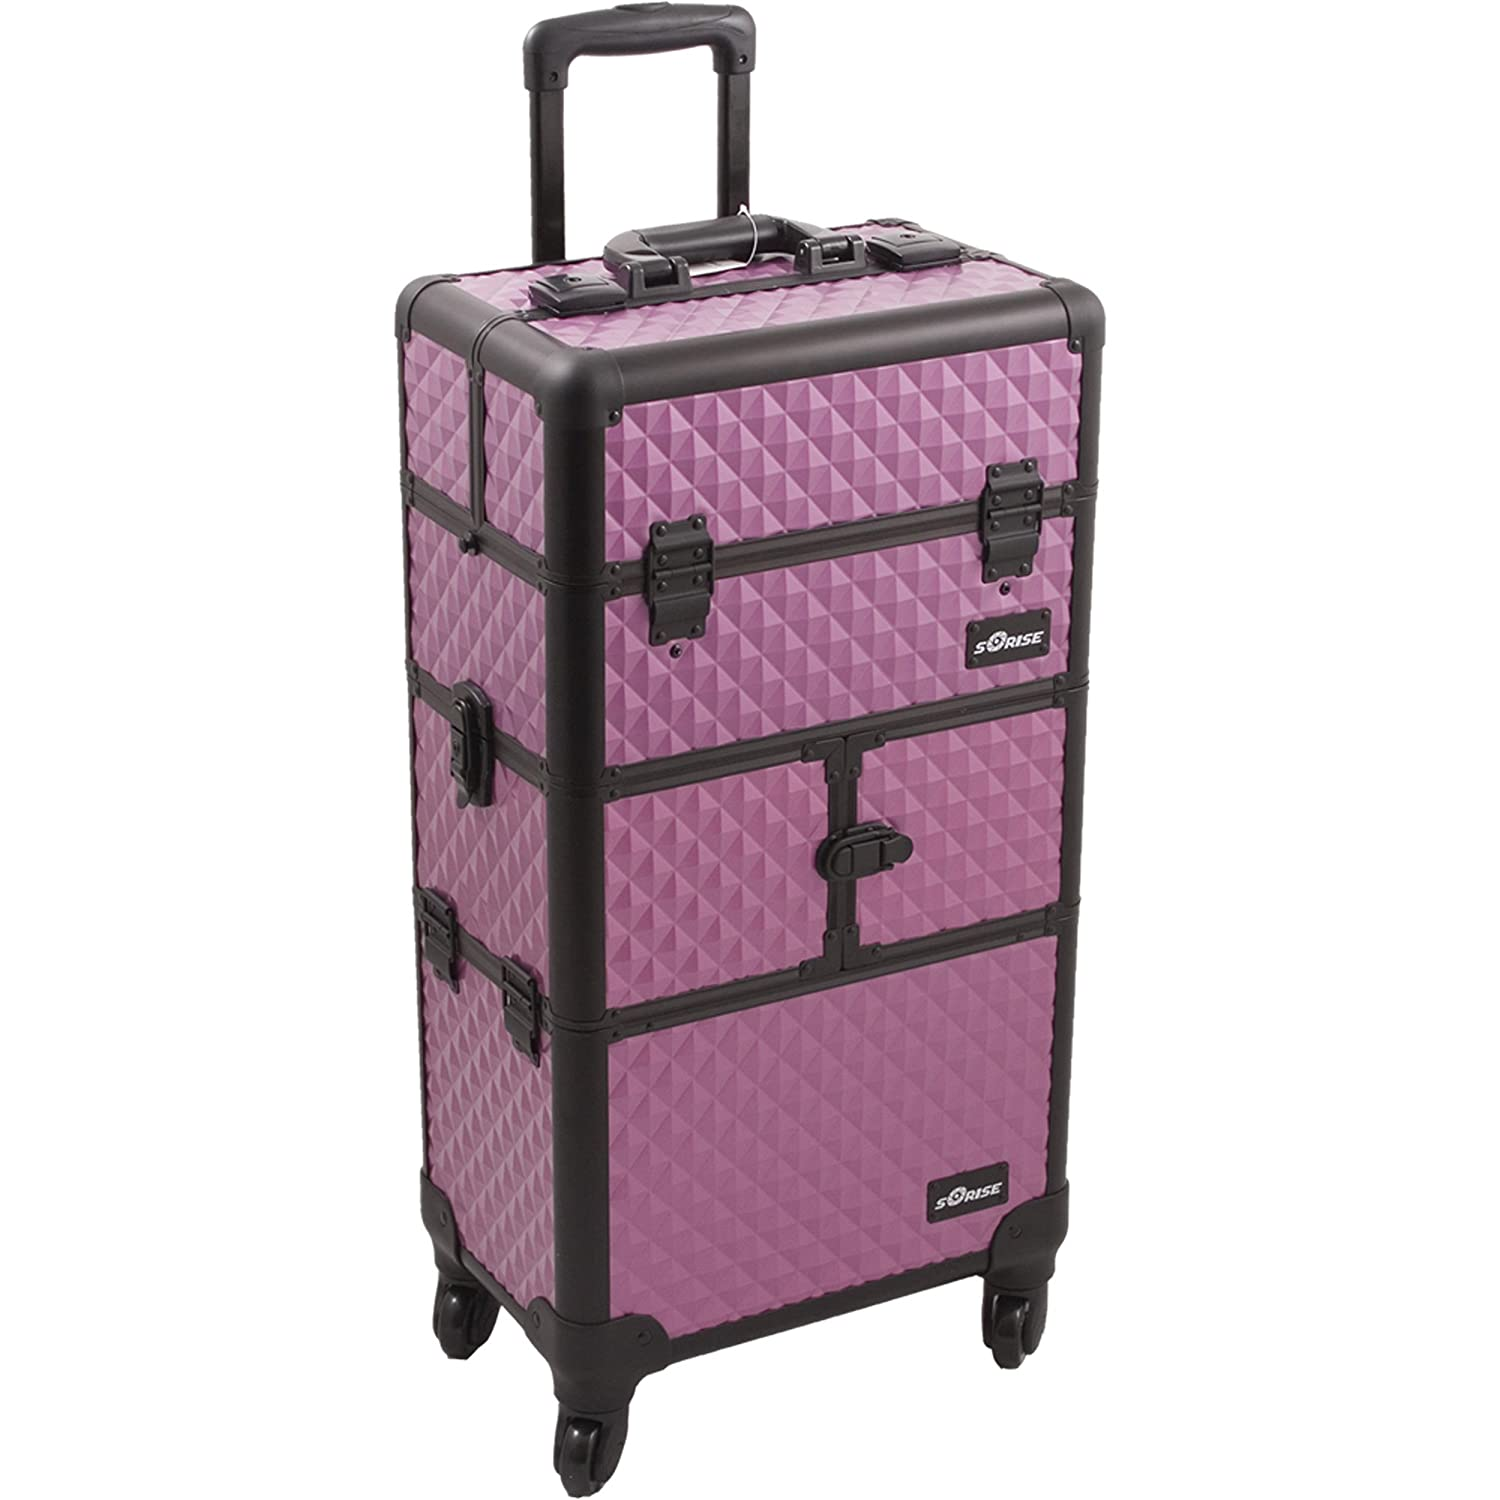 SUNRISE Makeup Case on Wheels 2 in 1 Professional Organizer I3264, 9 Trays, 4 Wheel Spinner, Adjustable Drawer Dividers, Purple Diamond